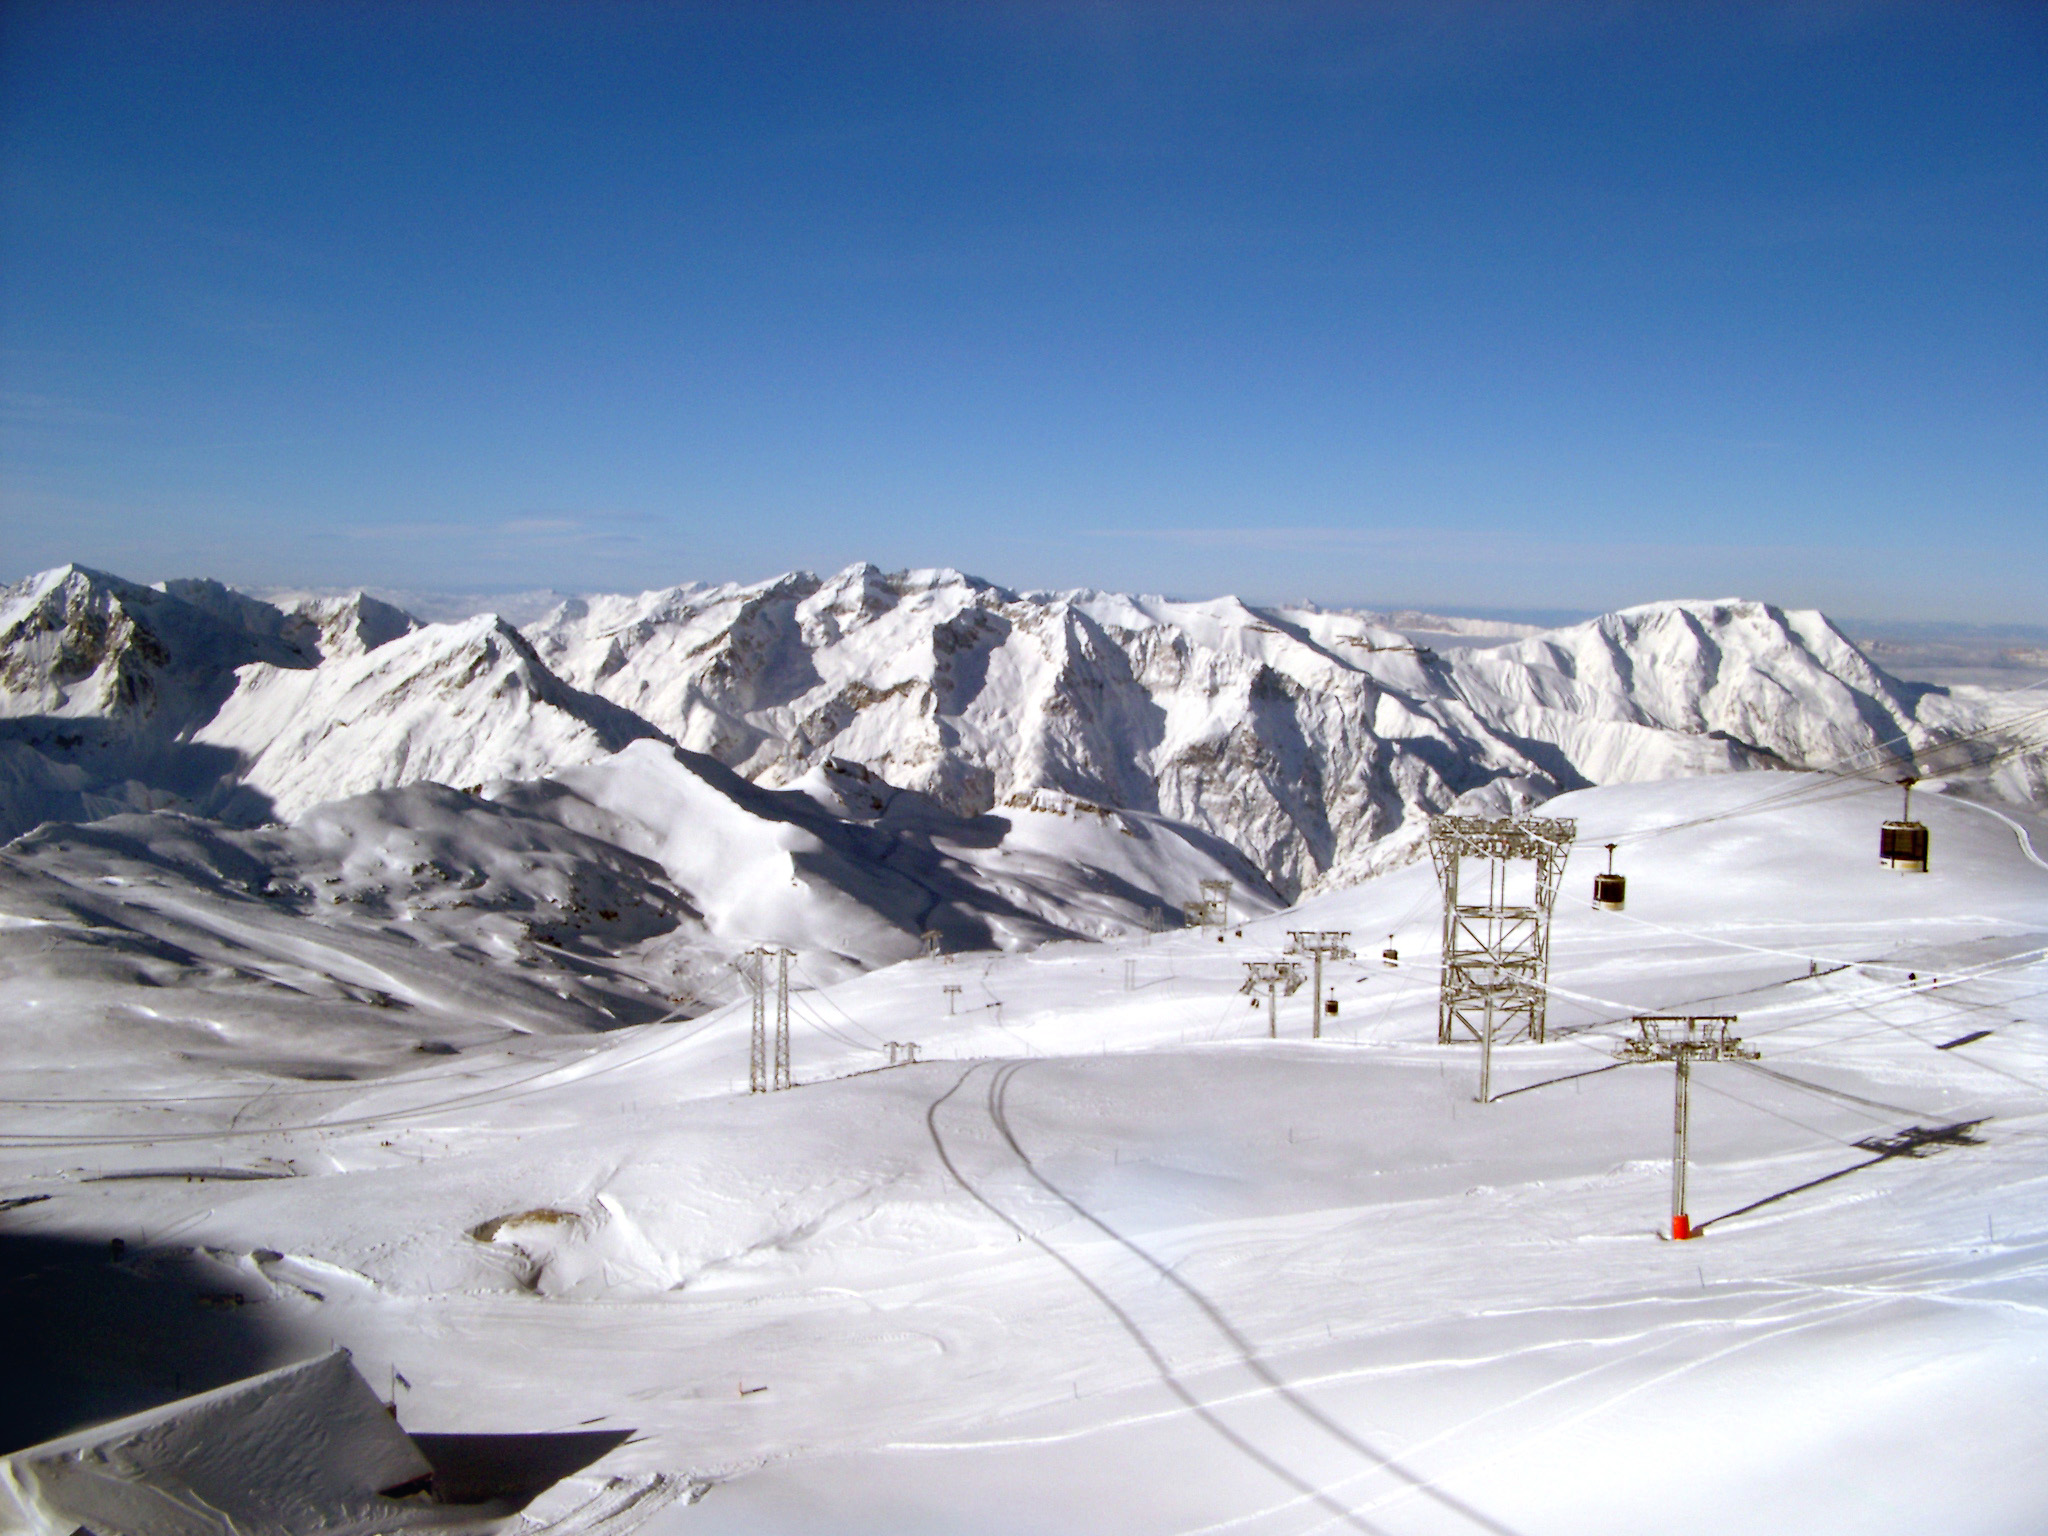 Scenic winter landscape with snow covered mountains and a piste with chair lifts for skiers